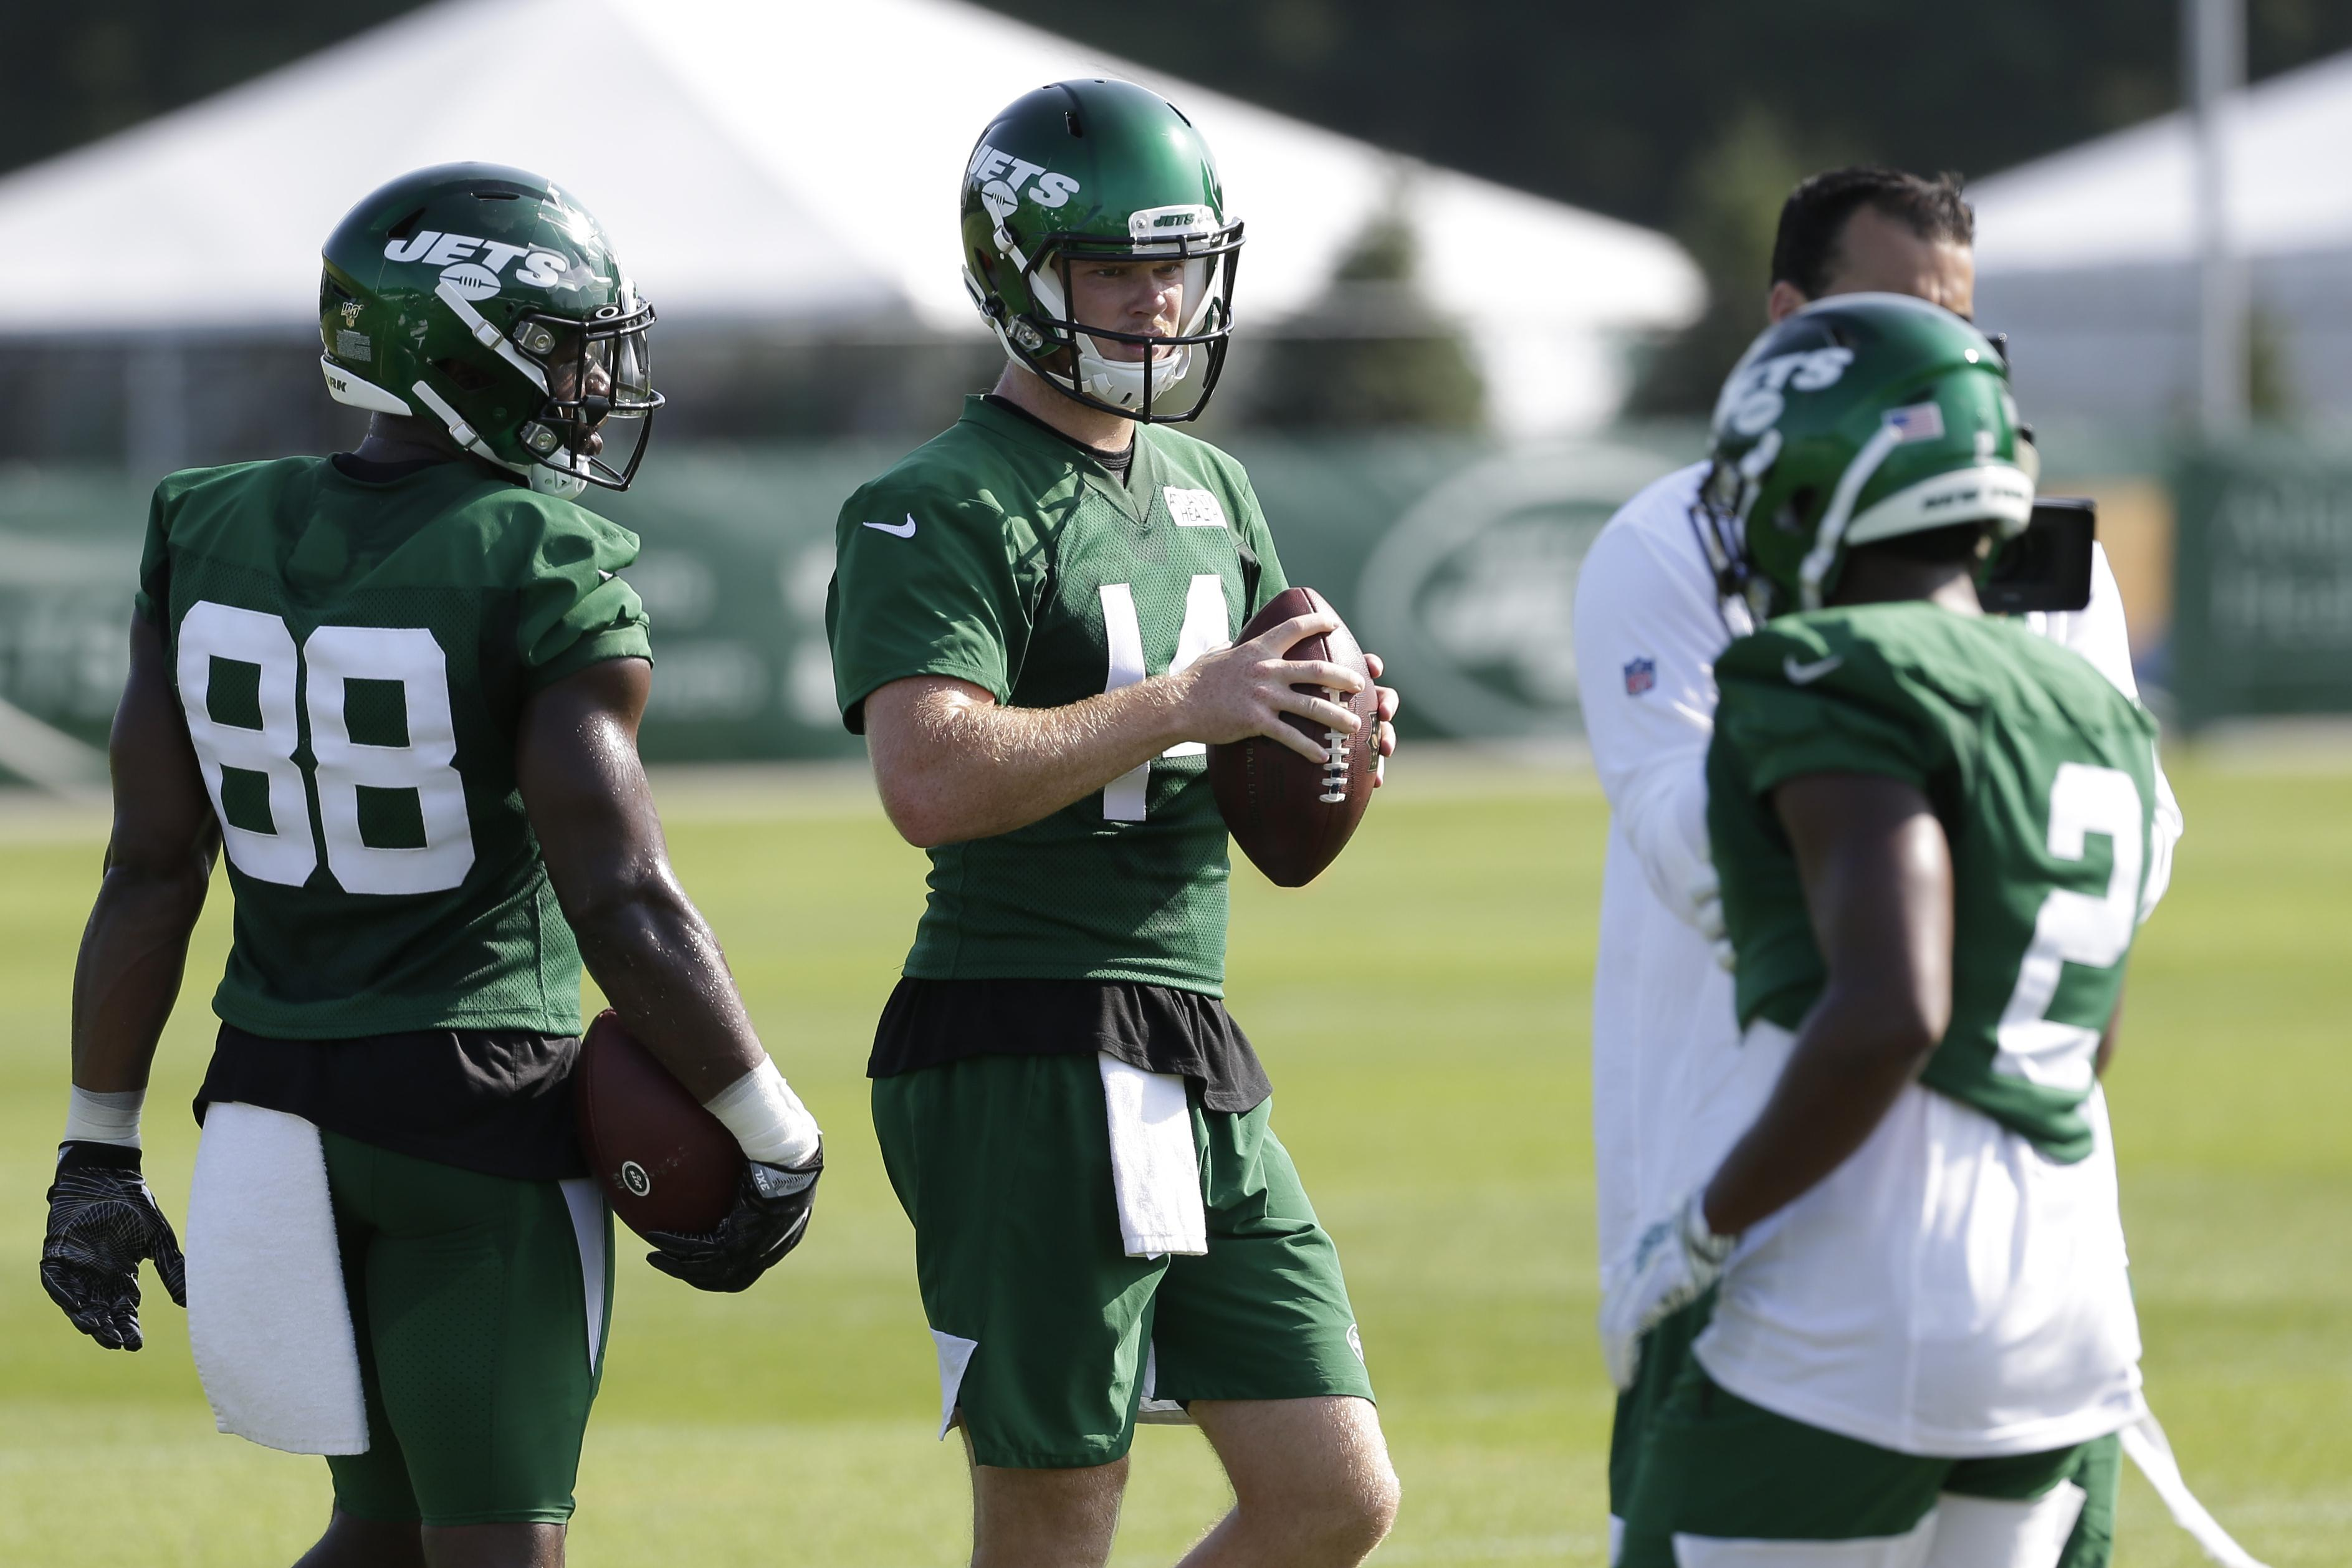 Jets Sam Darnold Leading With His Plays And Words On The